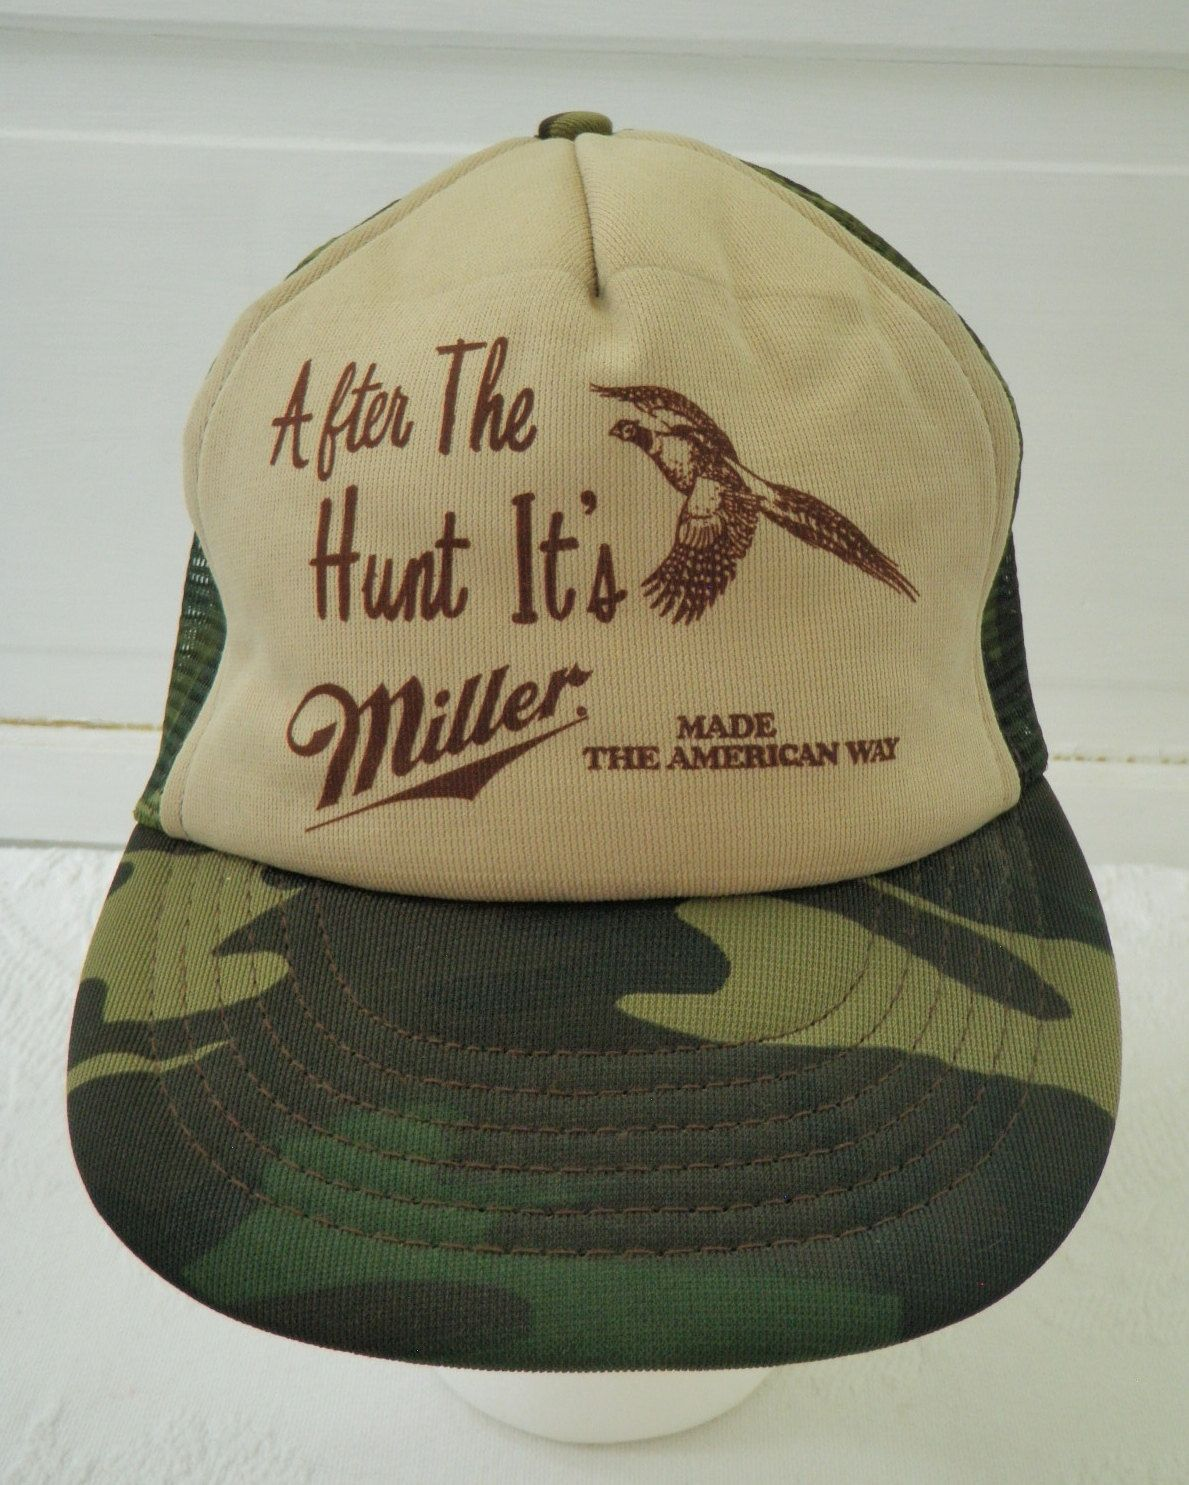 8ebc8b0e9a7 Miller Beer Camo Snapback Trucker Hat Vintage Hunting After The Hunt its  Miller Made the American